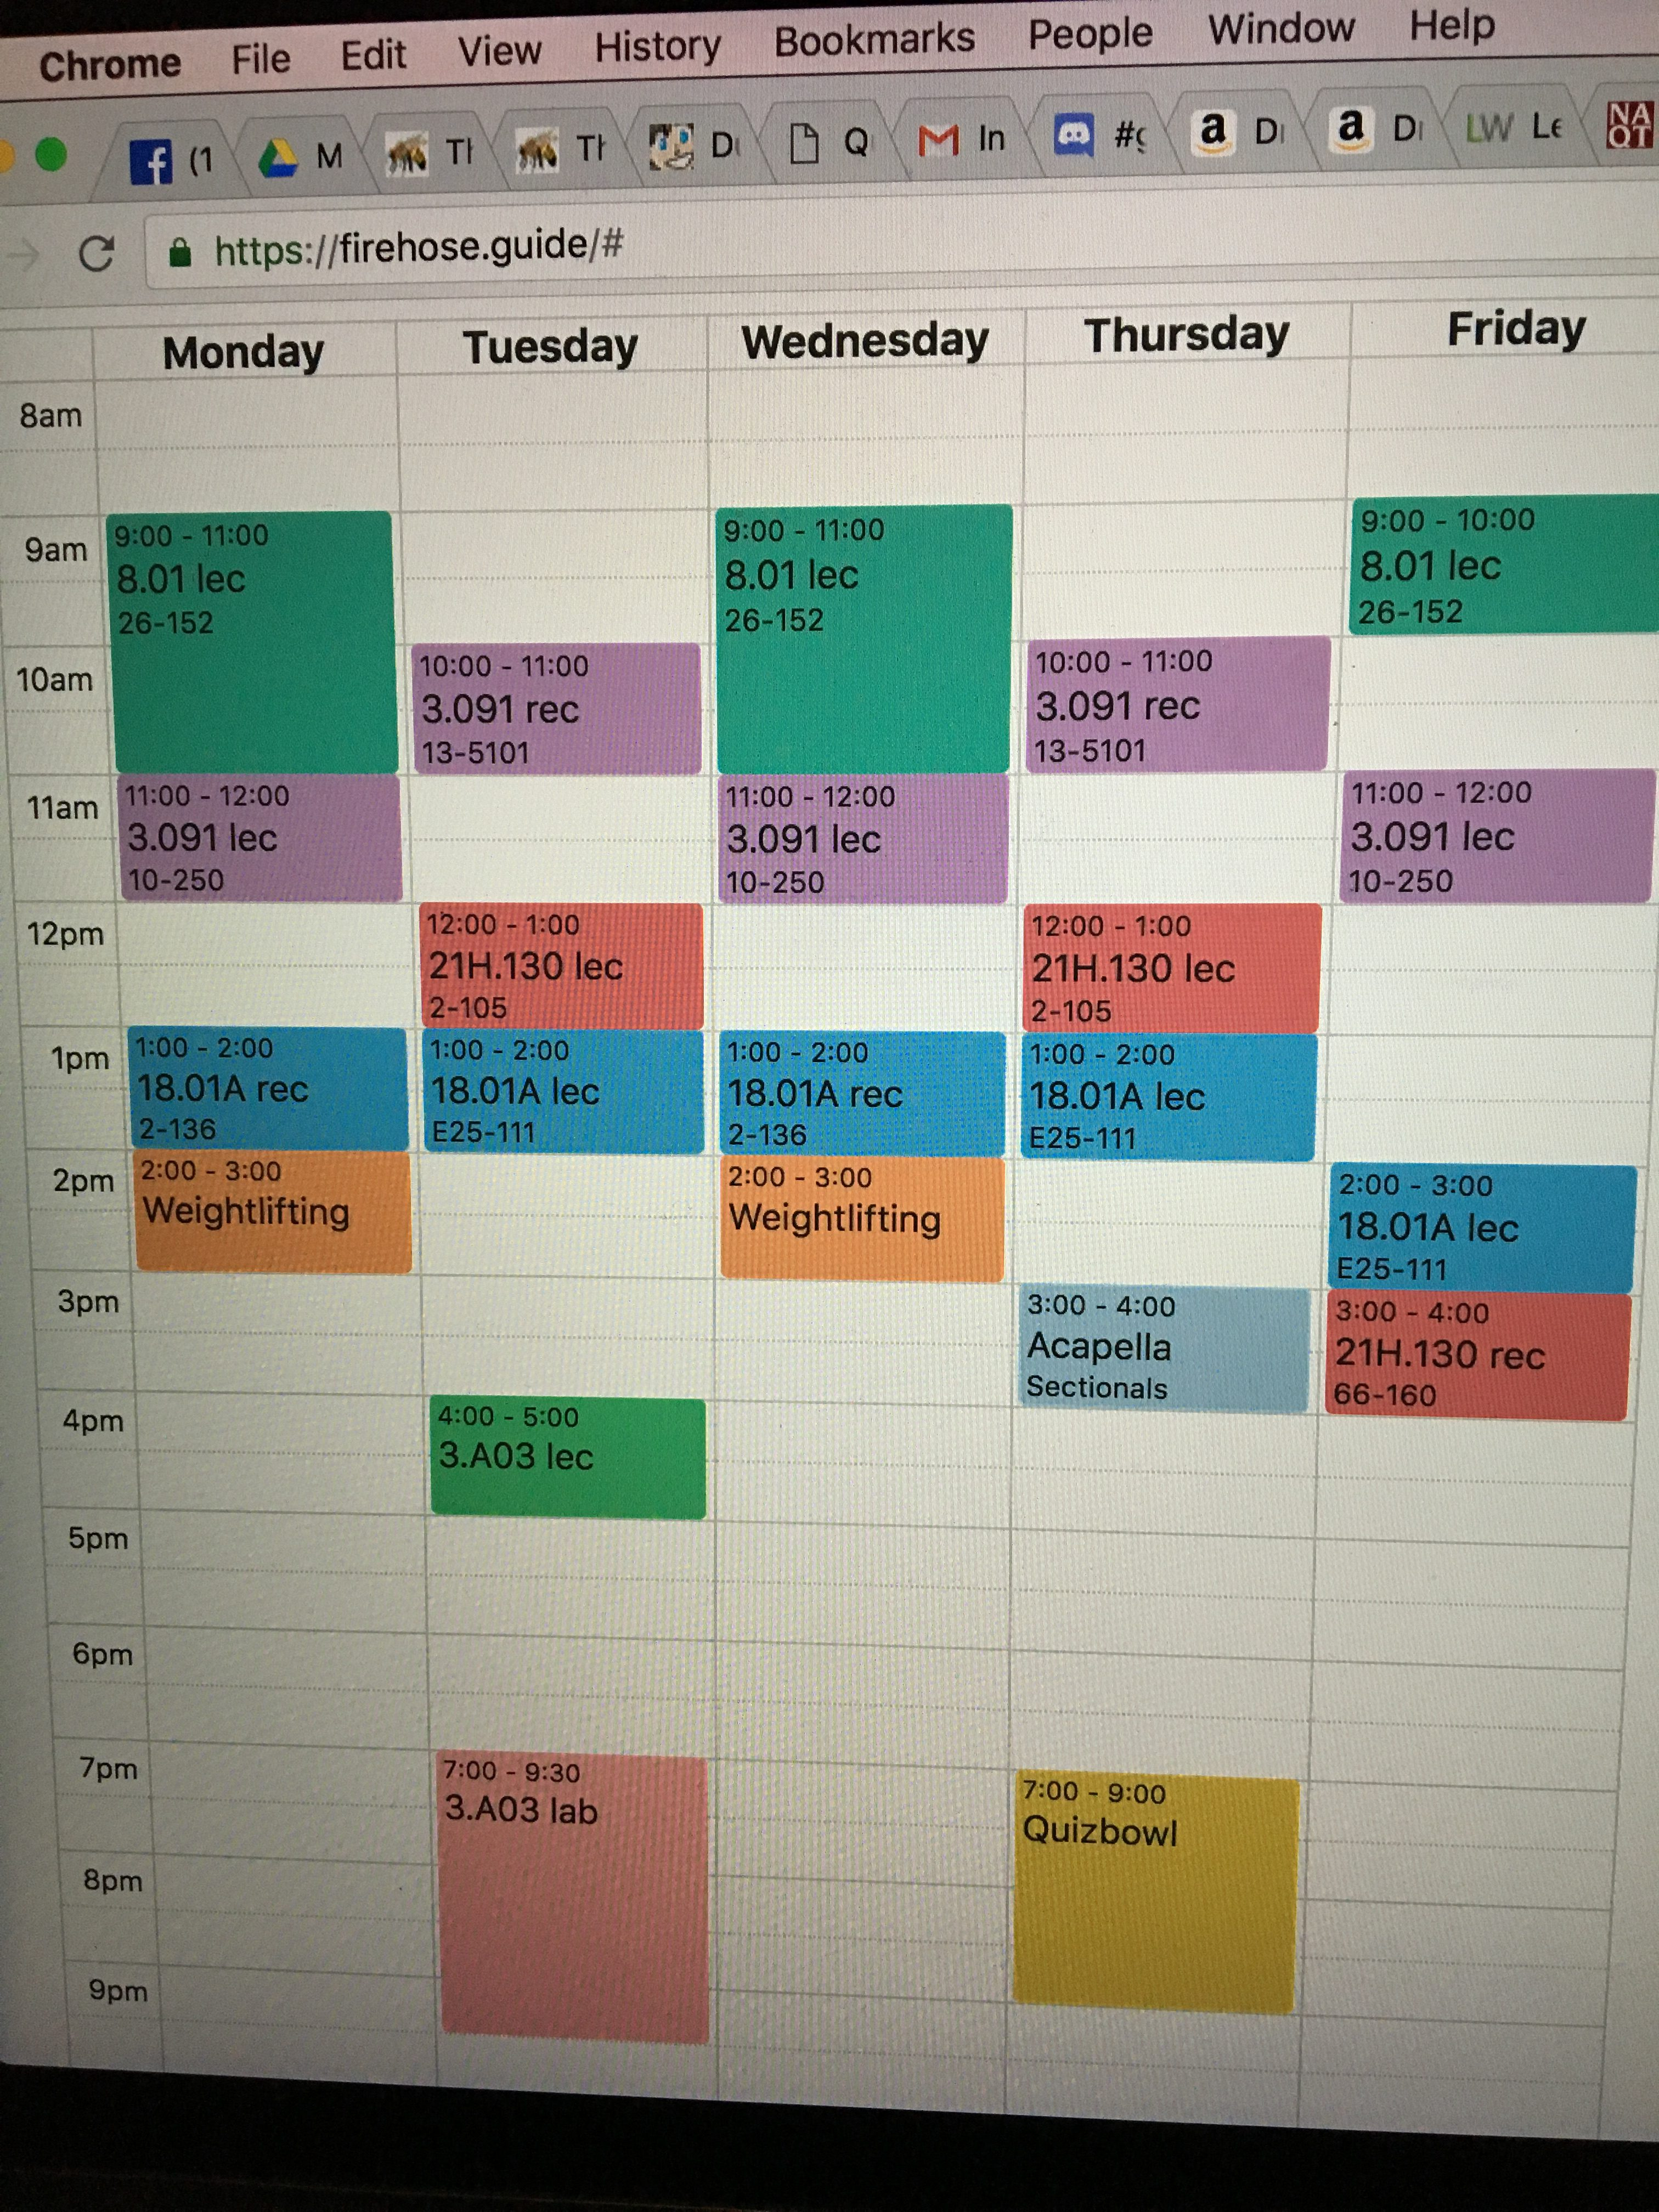 A picture of my schedule this past semester, organized using the website Firehose.